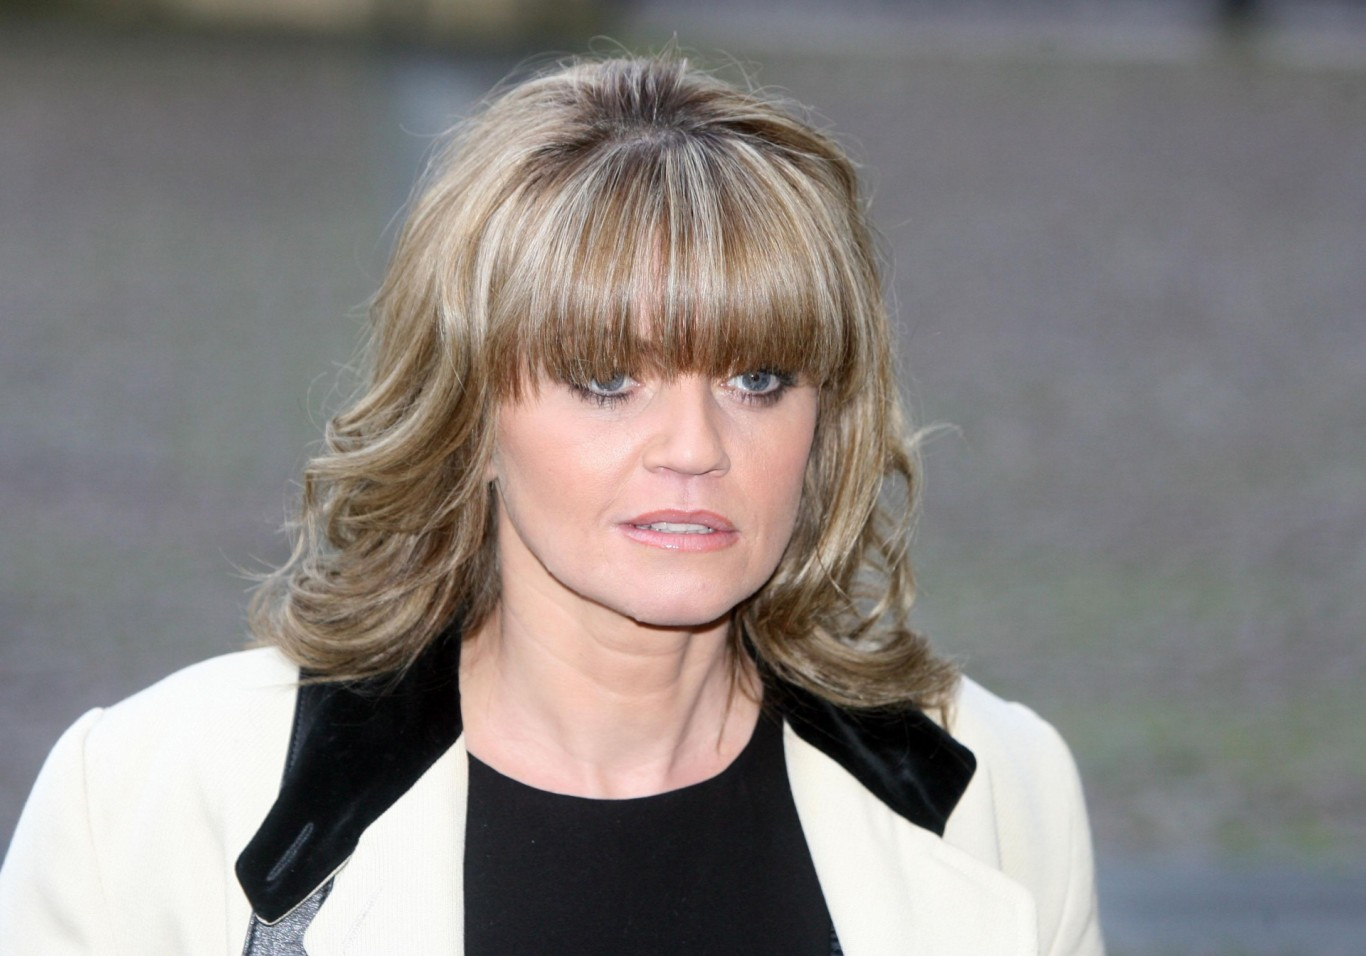 Was Danniella Westbrook axed from Hollyoaks or did she quit